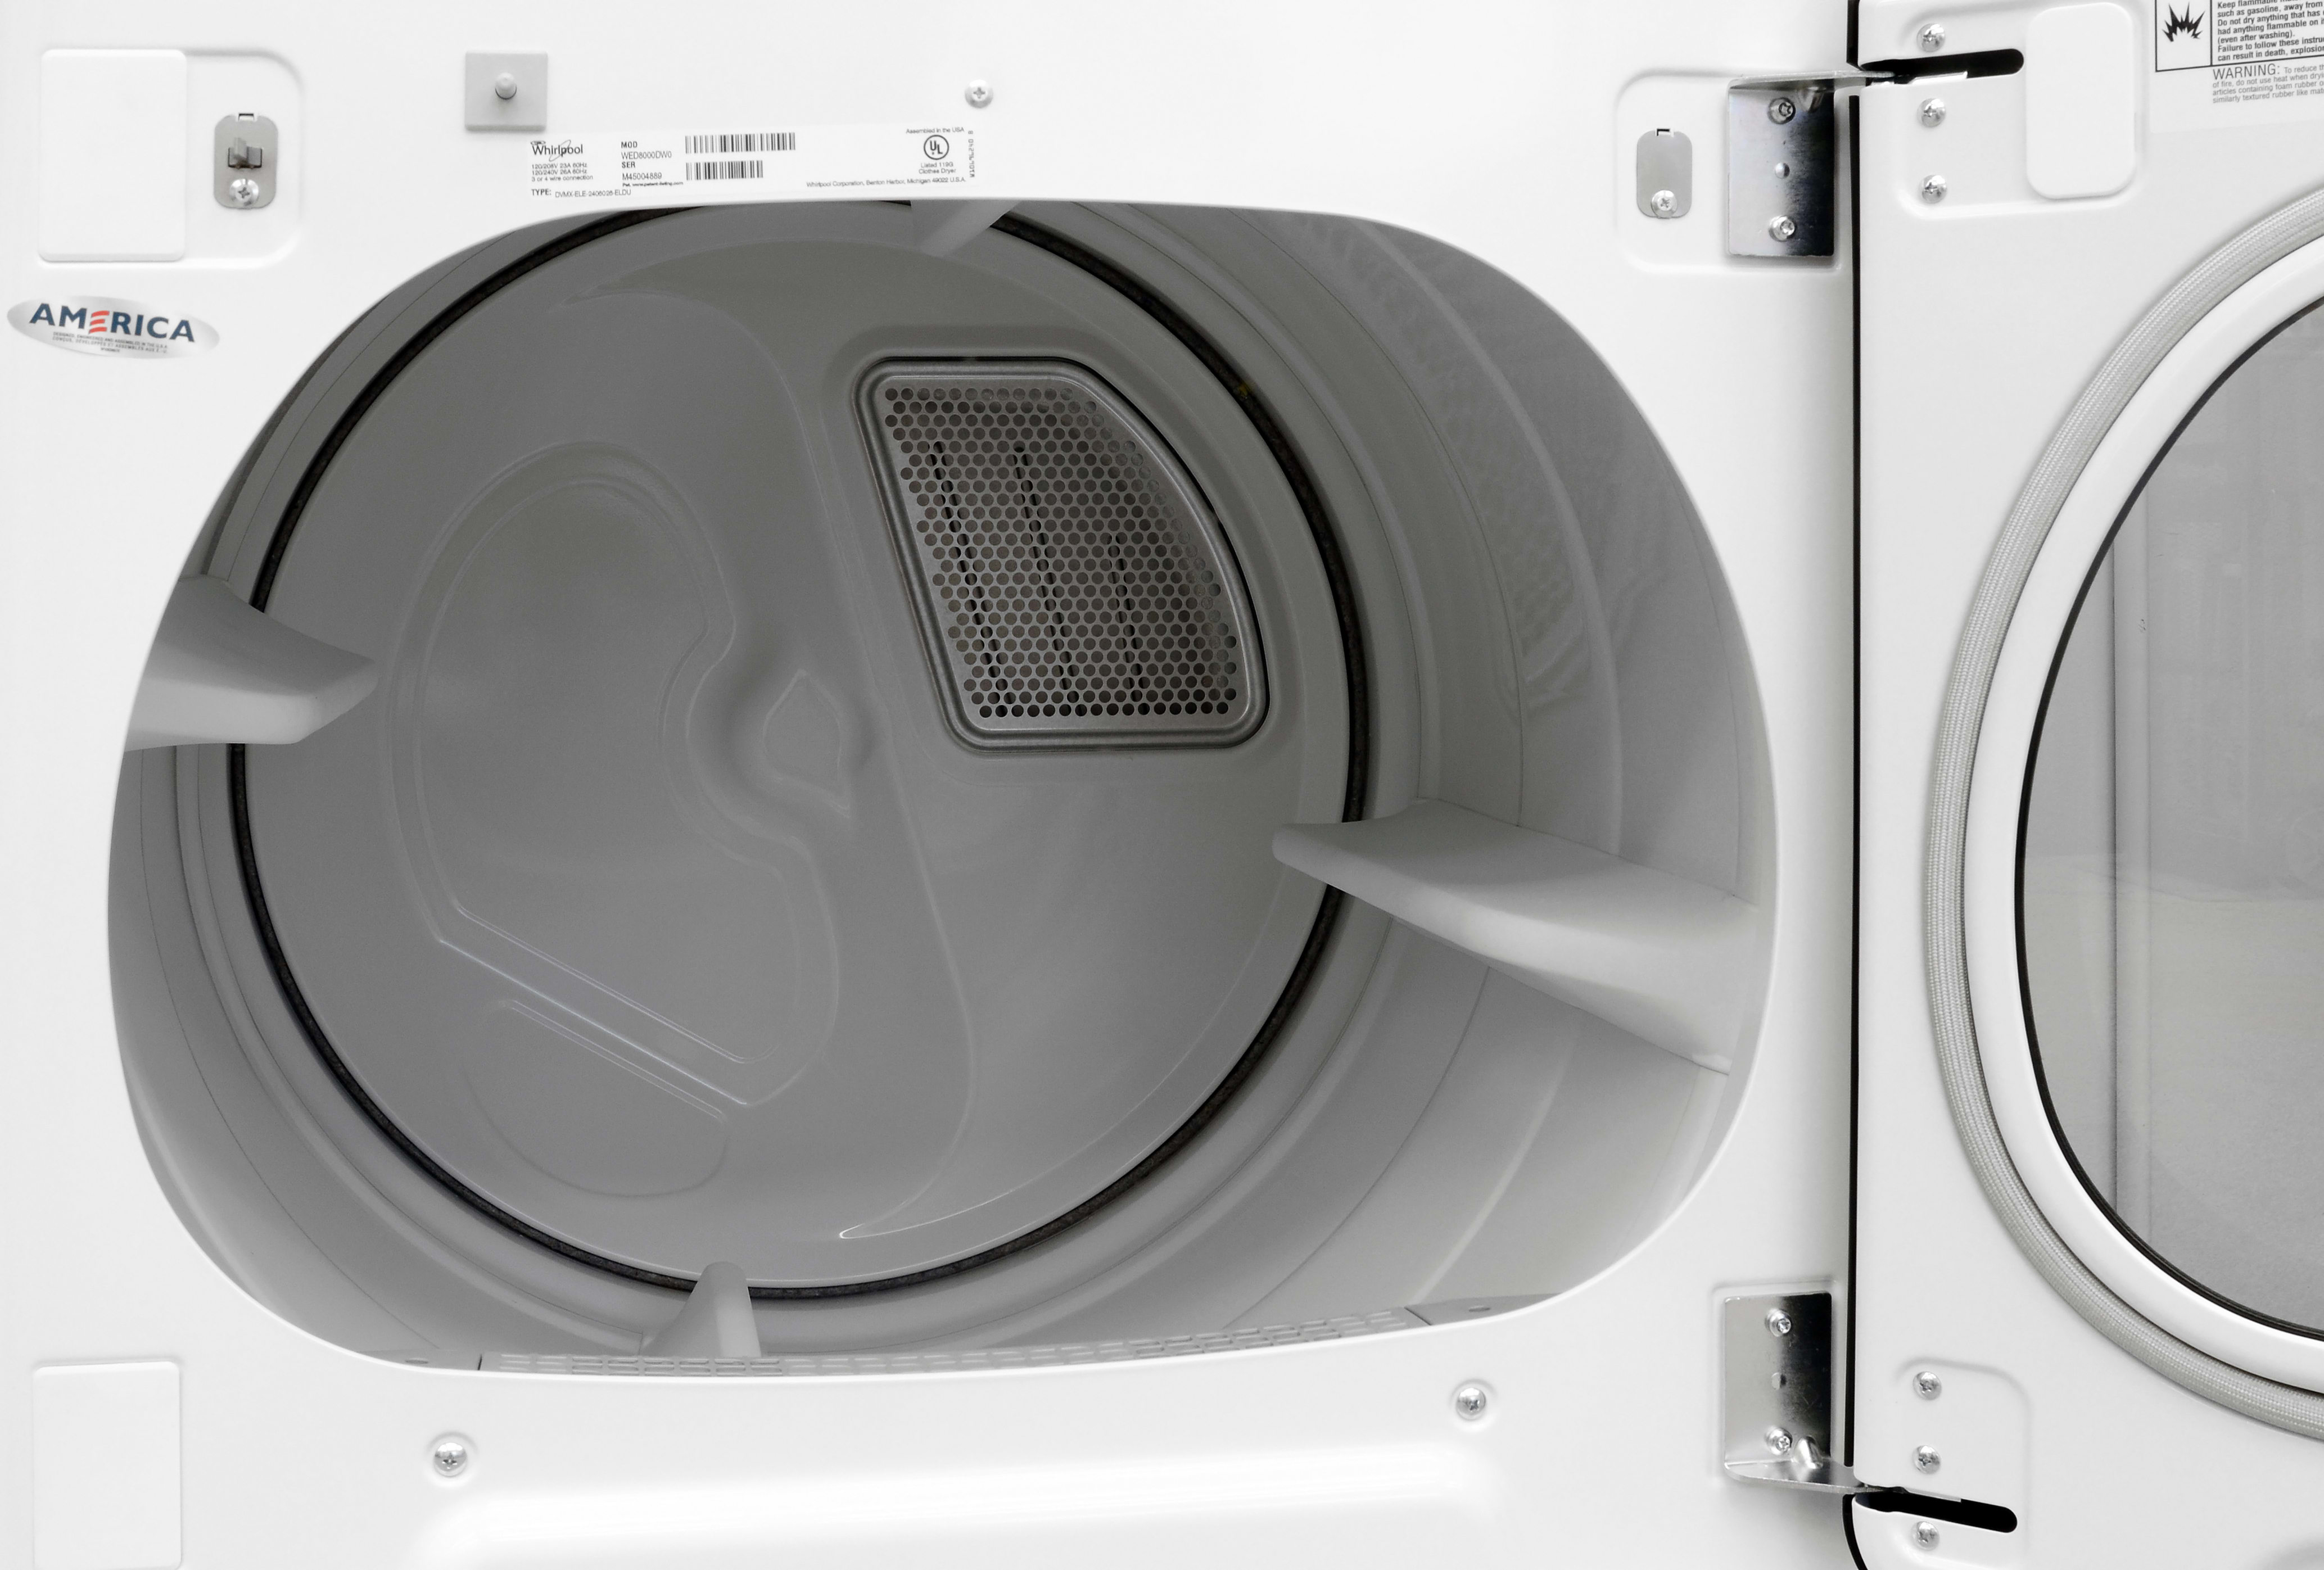 White drums like the one found inside the Whirlpool Cabrio WED8000DW may be common on lower-priced models, but ones capable of holding 8.8 cubic feet of laundry are not.